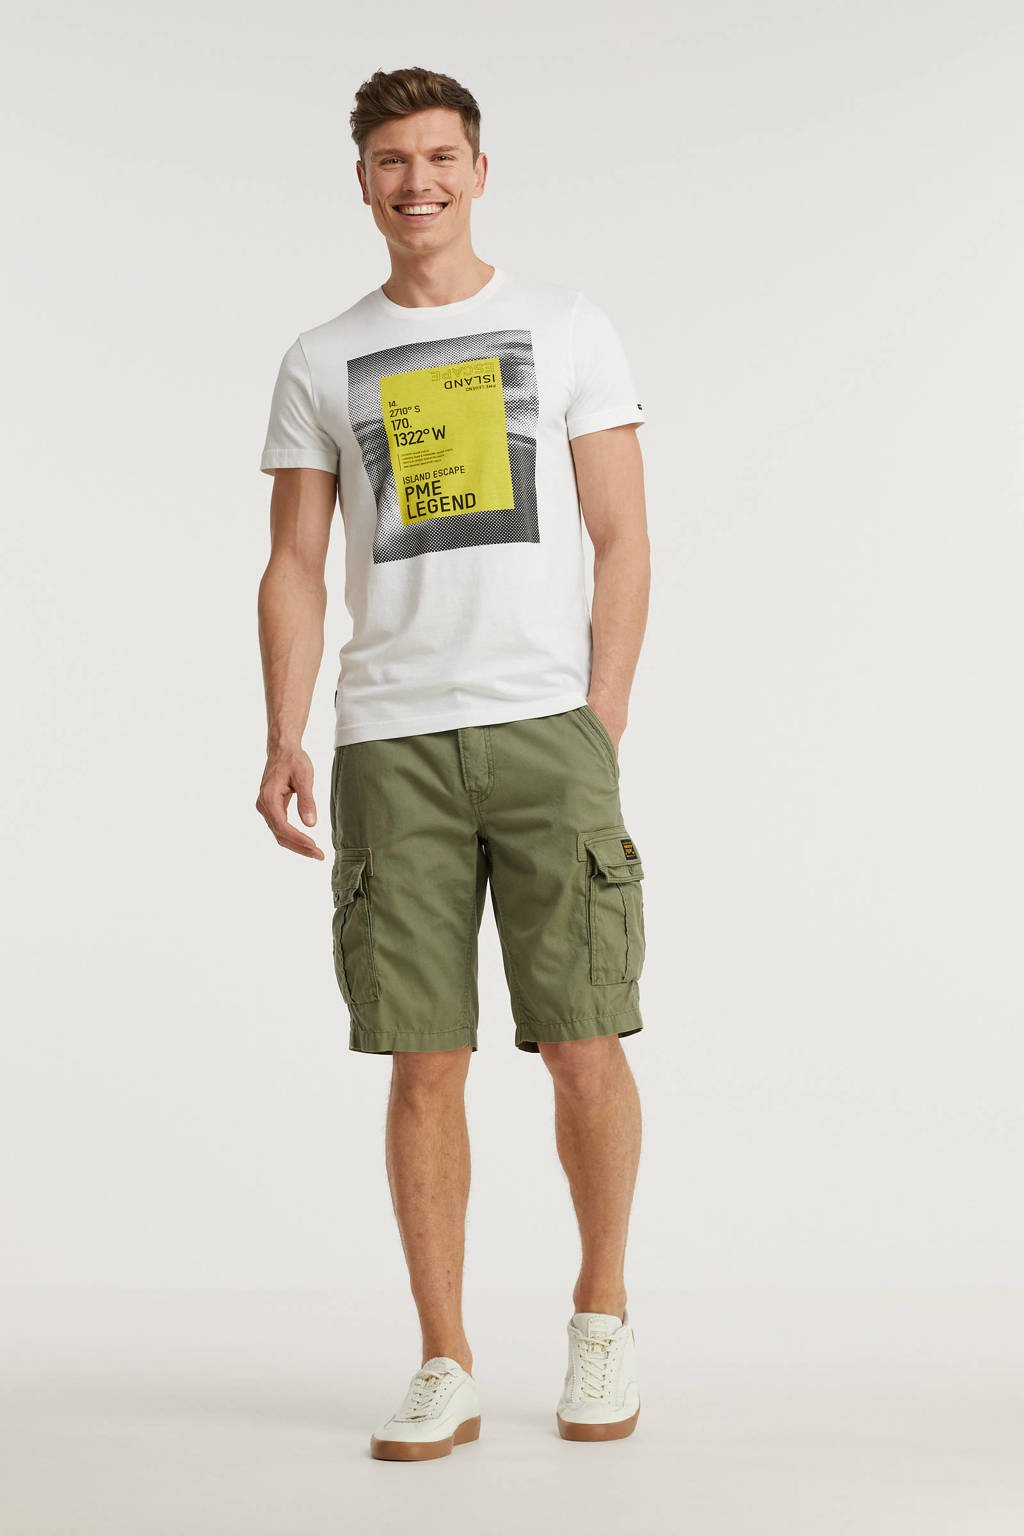 PME Legend regular fit cargo short DOBBY STRUCTURE army, Army